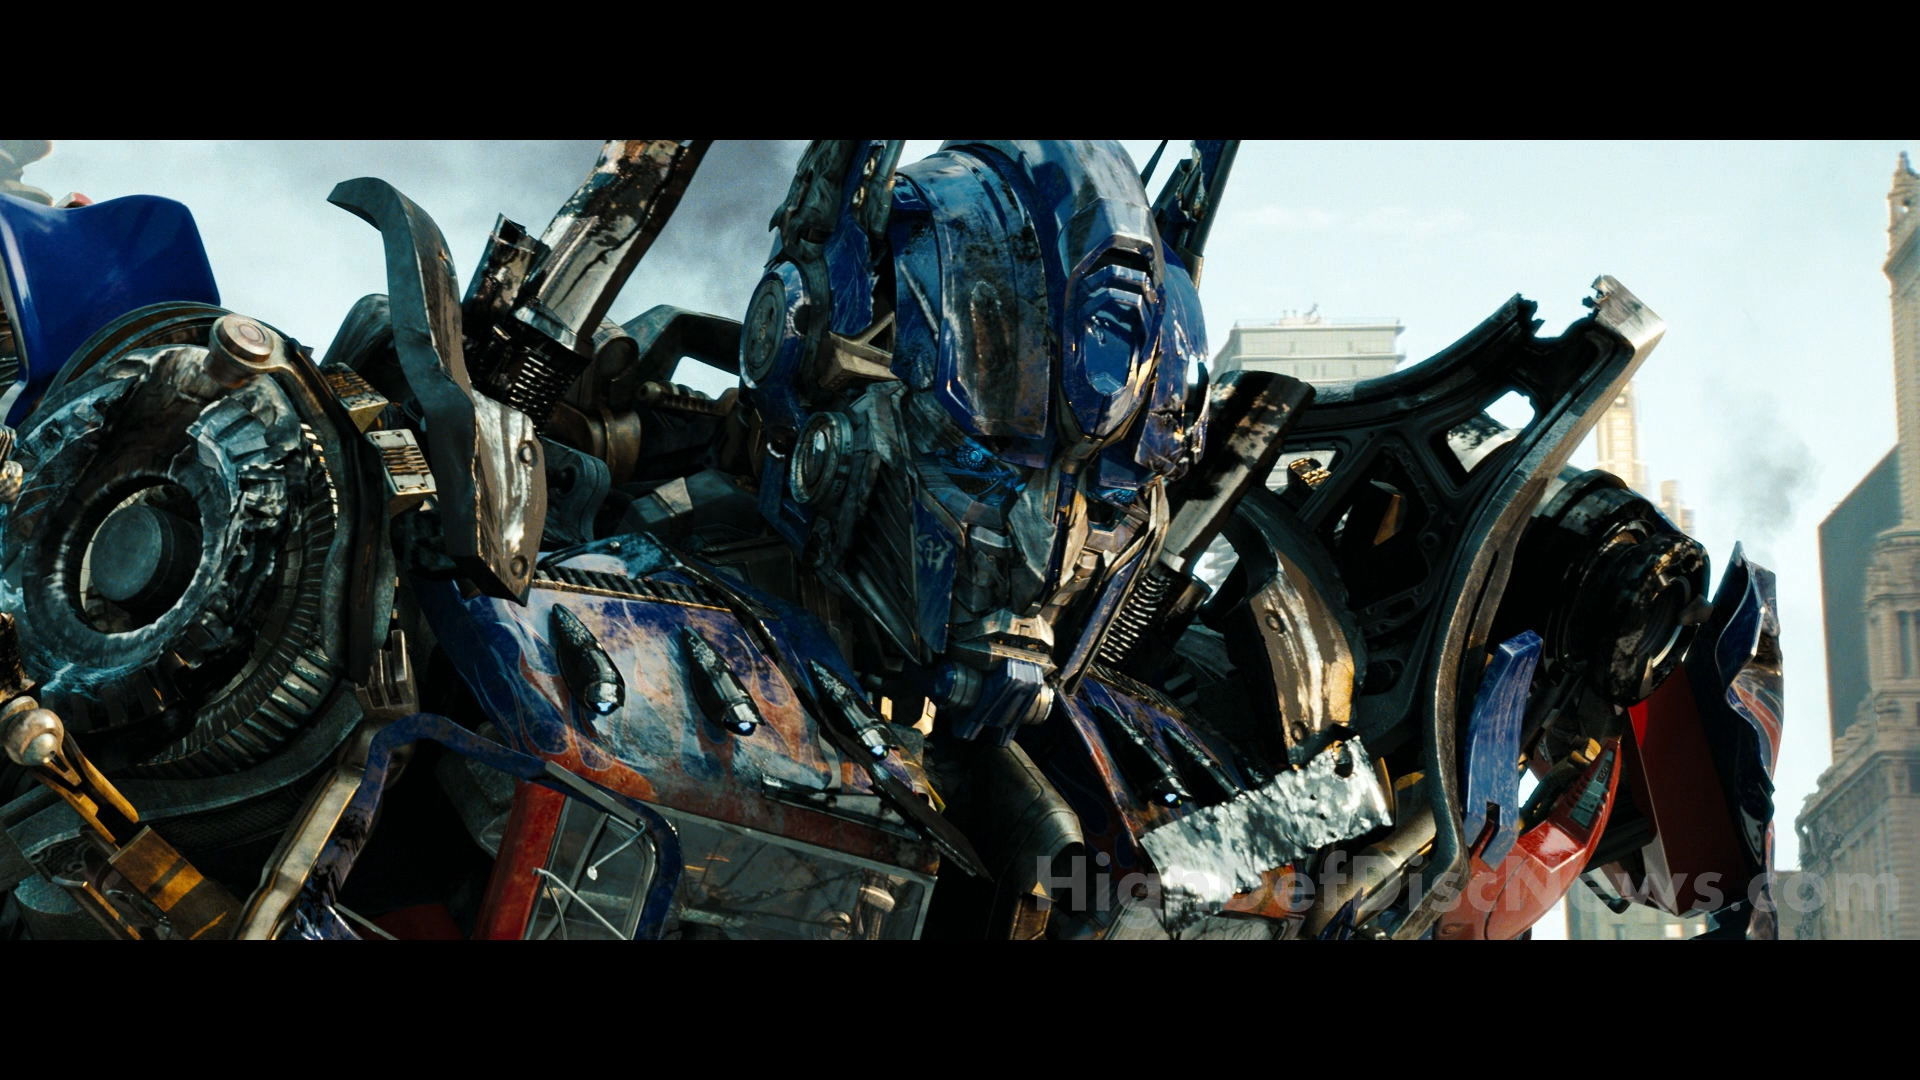 optimus prime face transformers hd